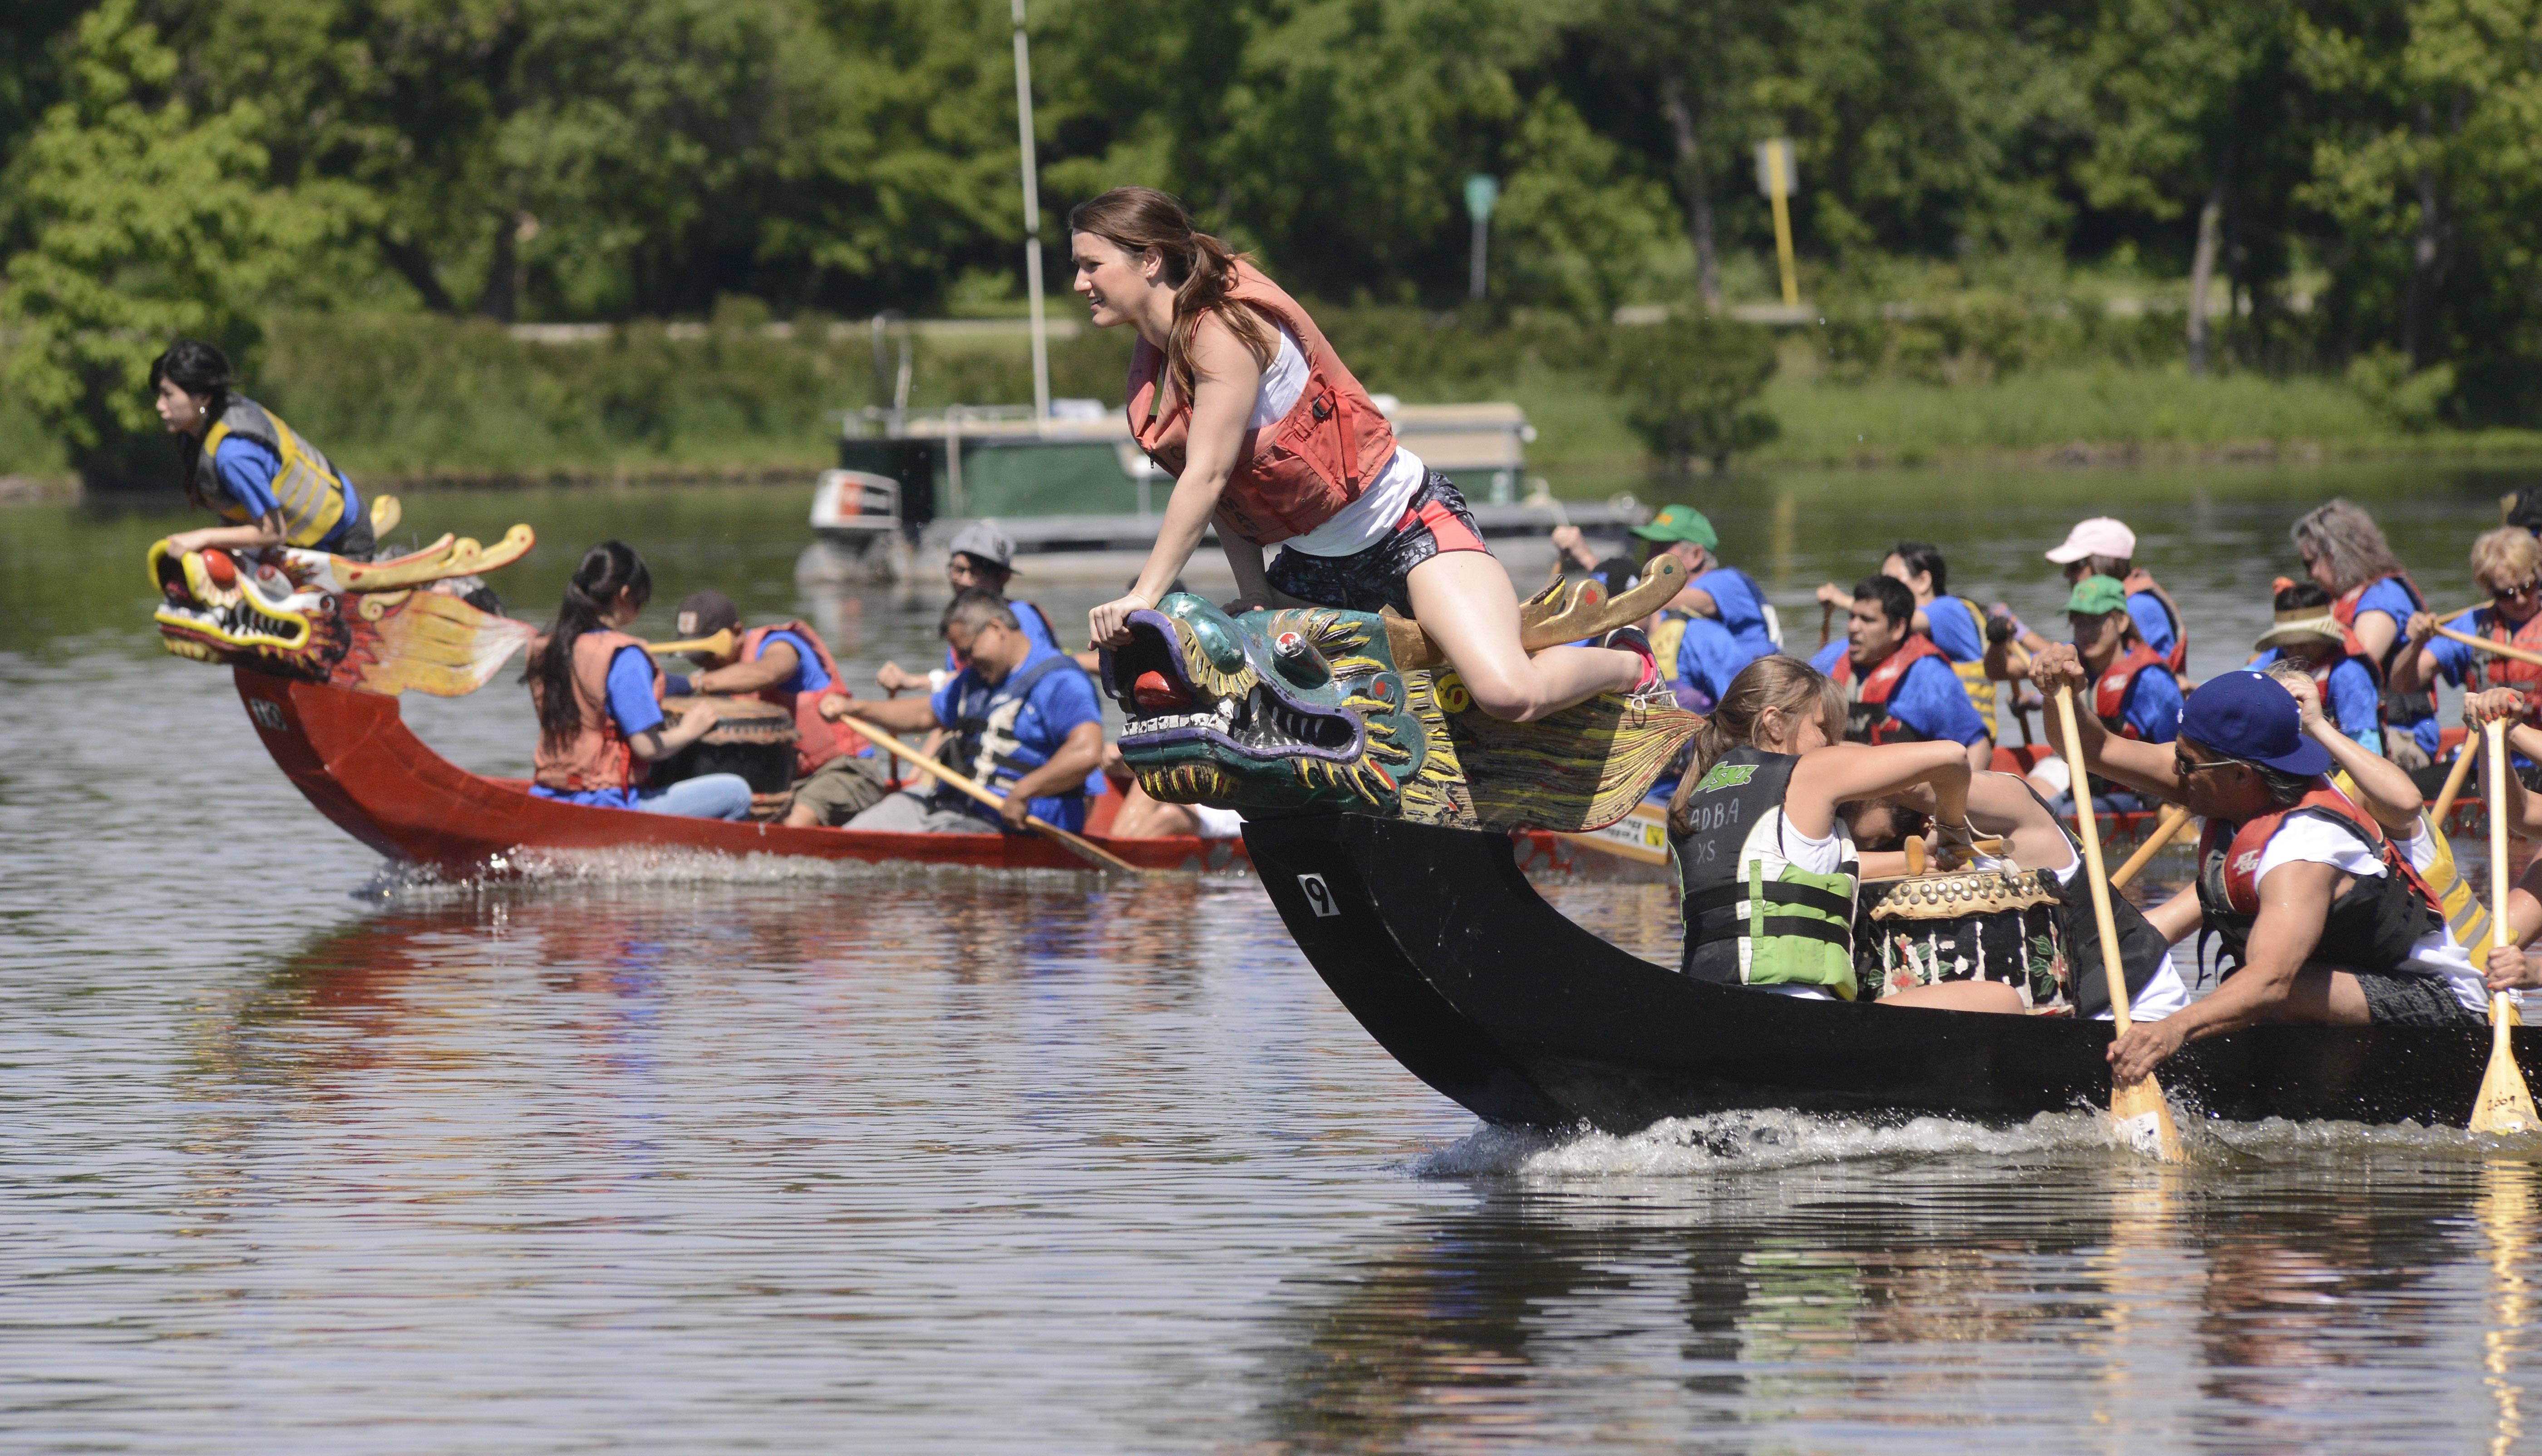 Dragon boat races are a popular event at St. Charles RiverFest.